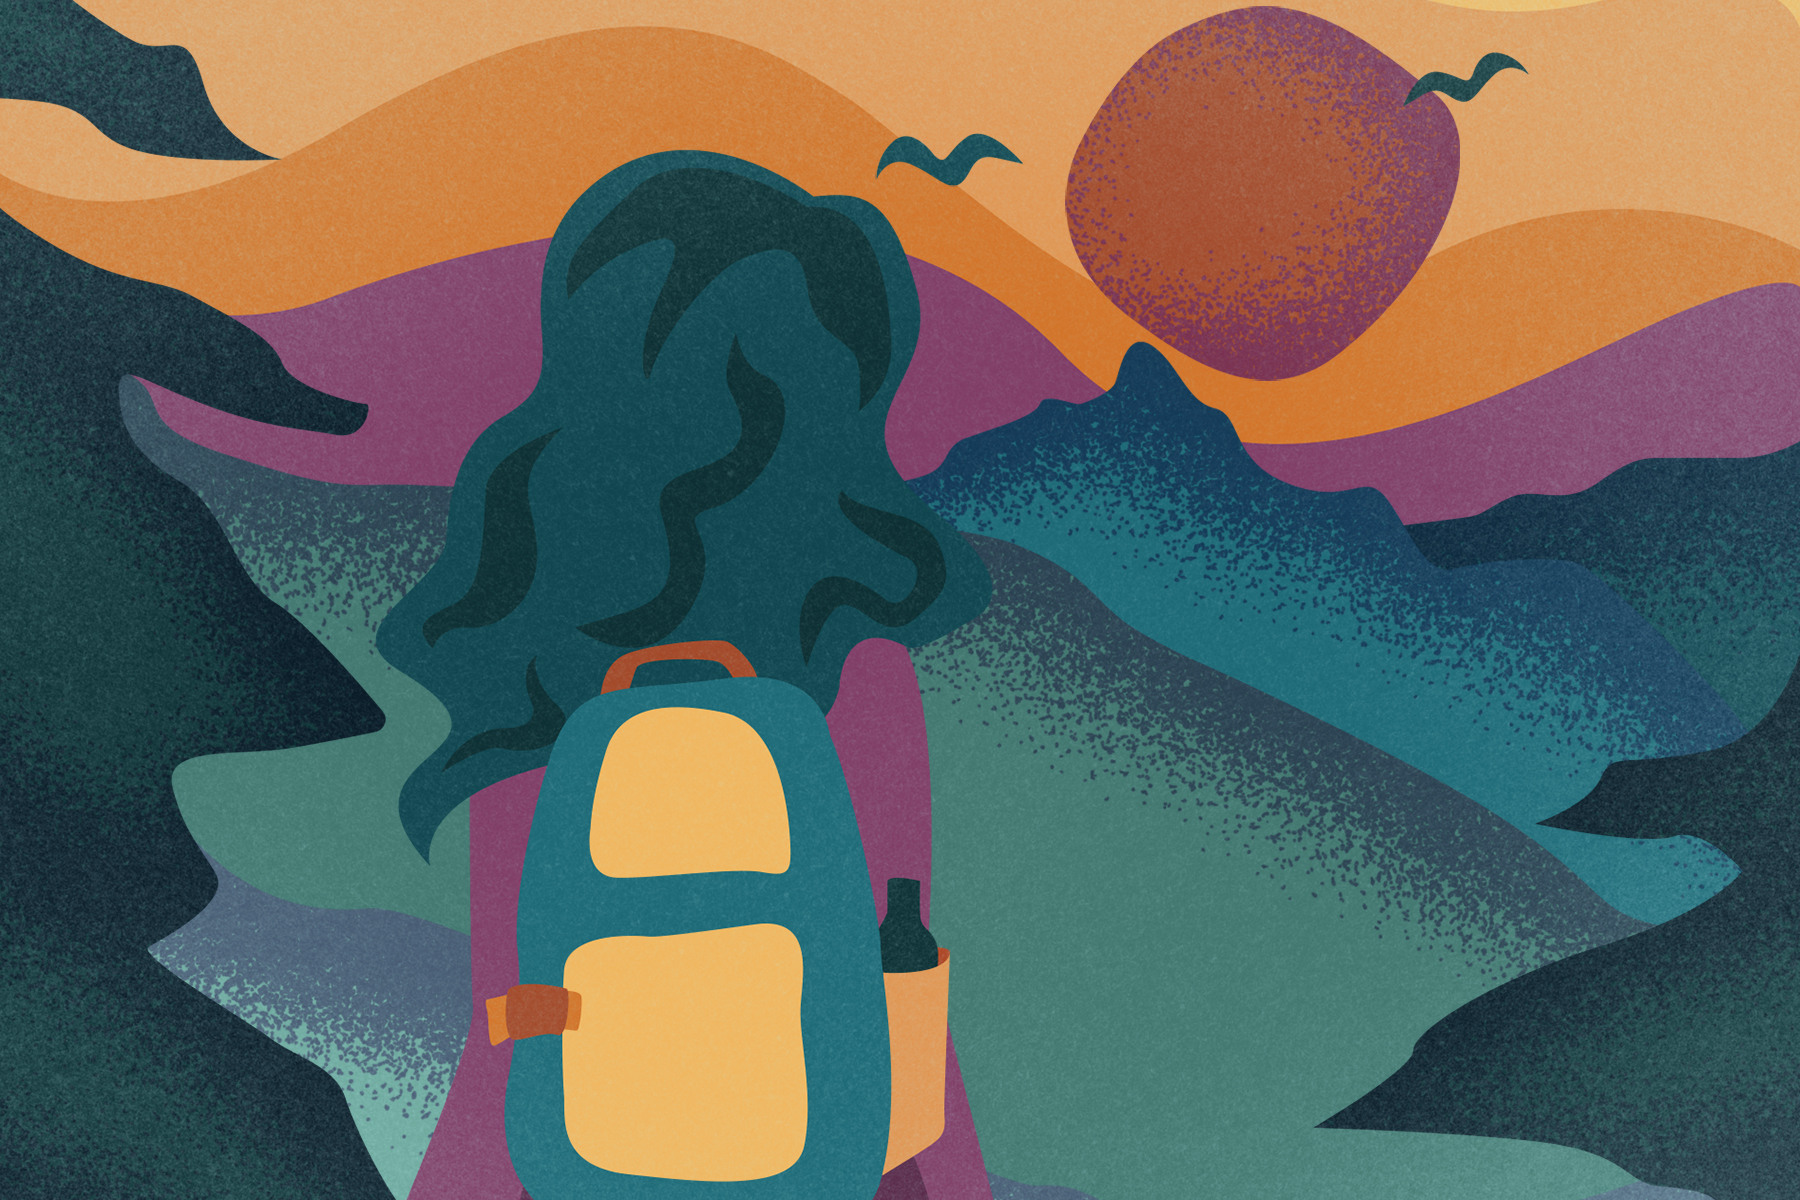 A person backpacking is illustrated in front of a beautiful and colorful mountain landscape.